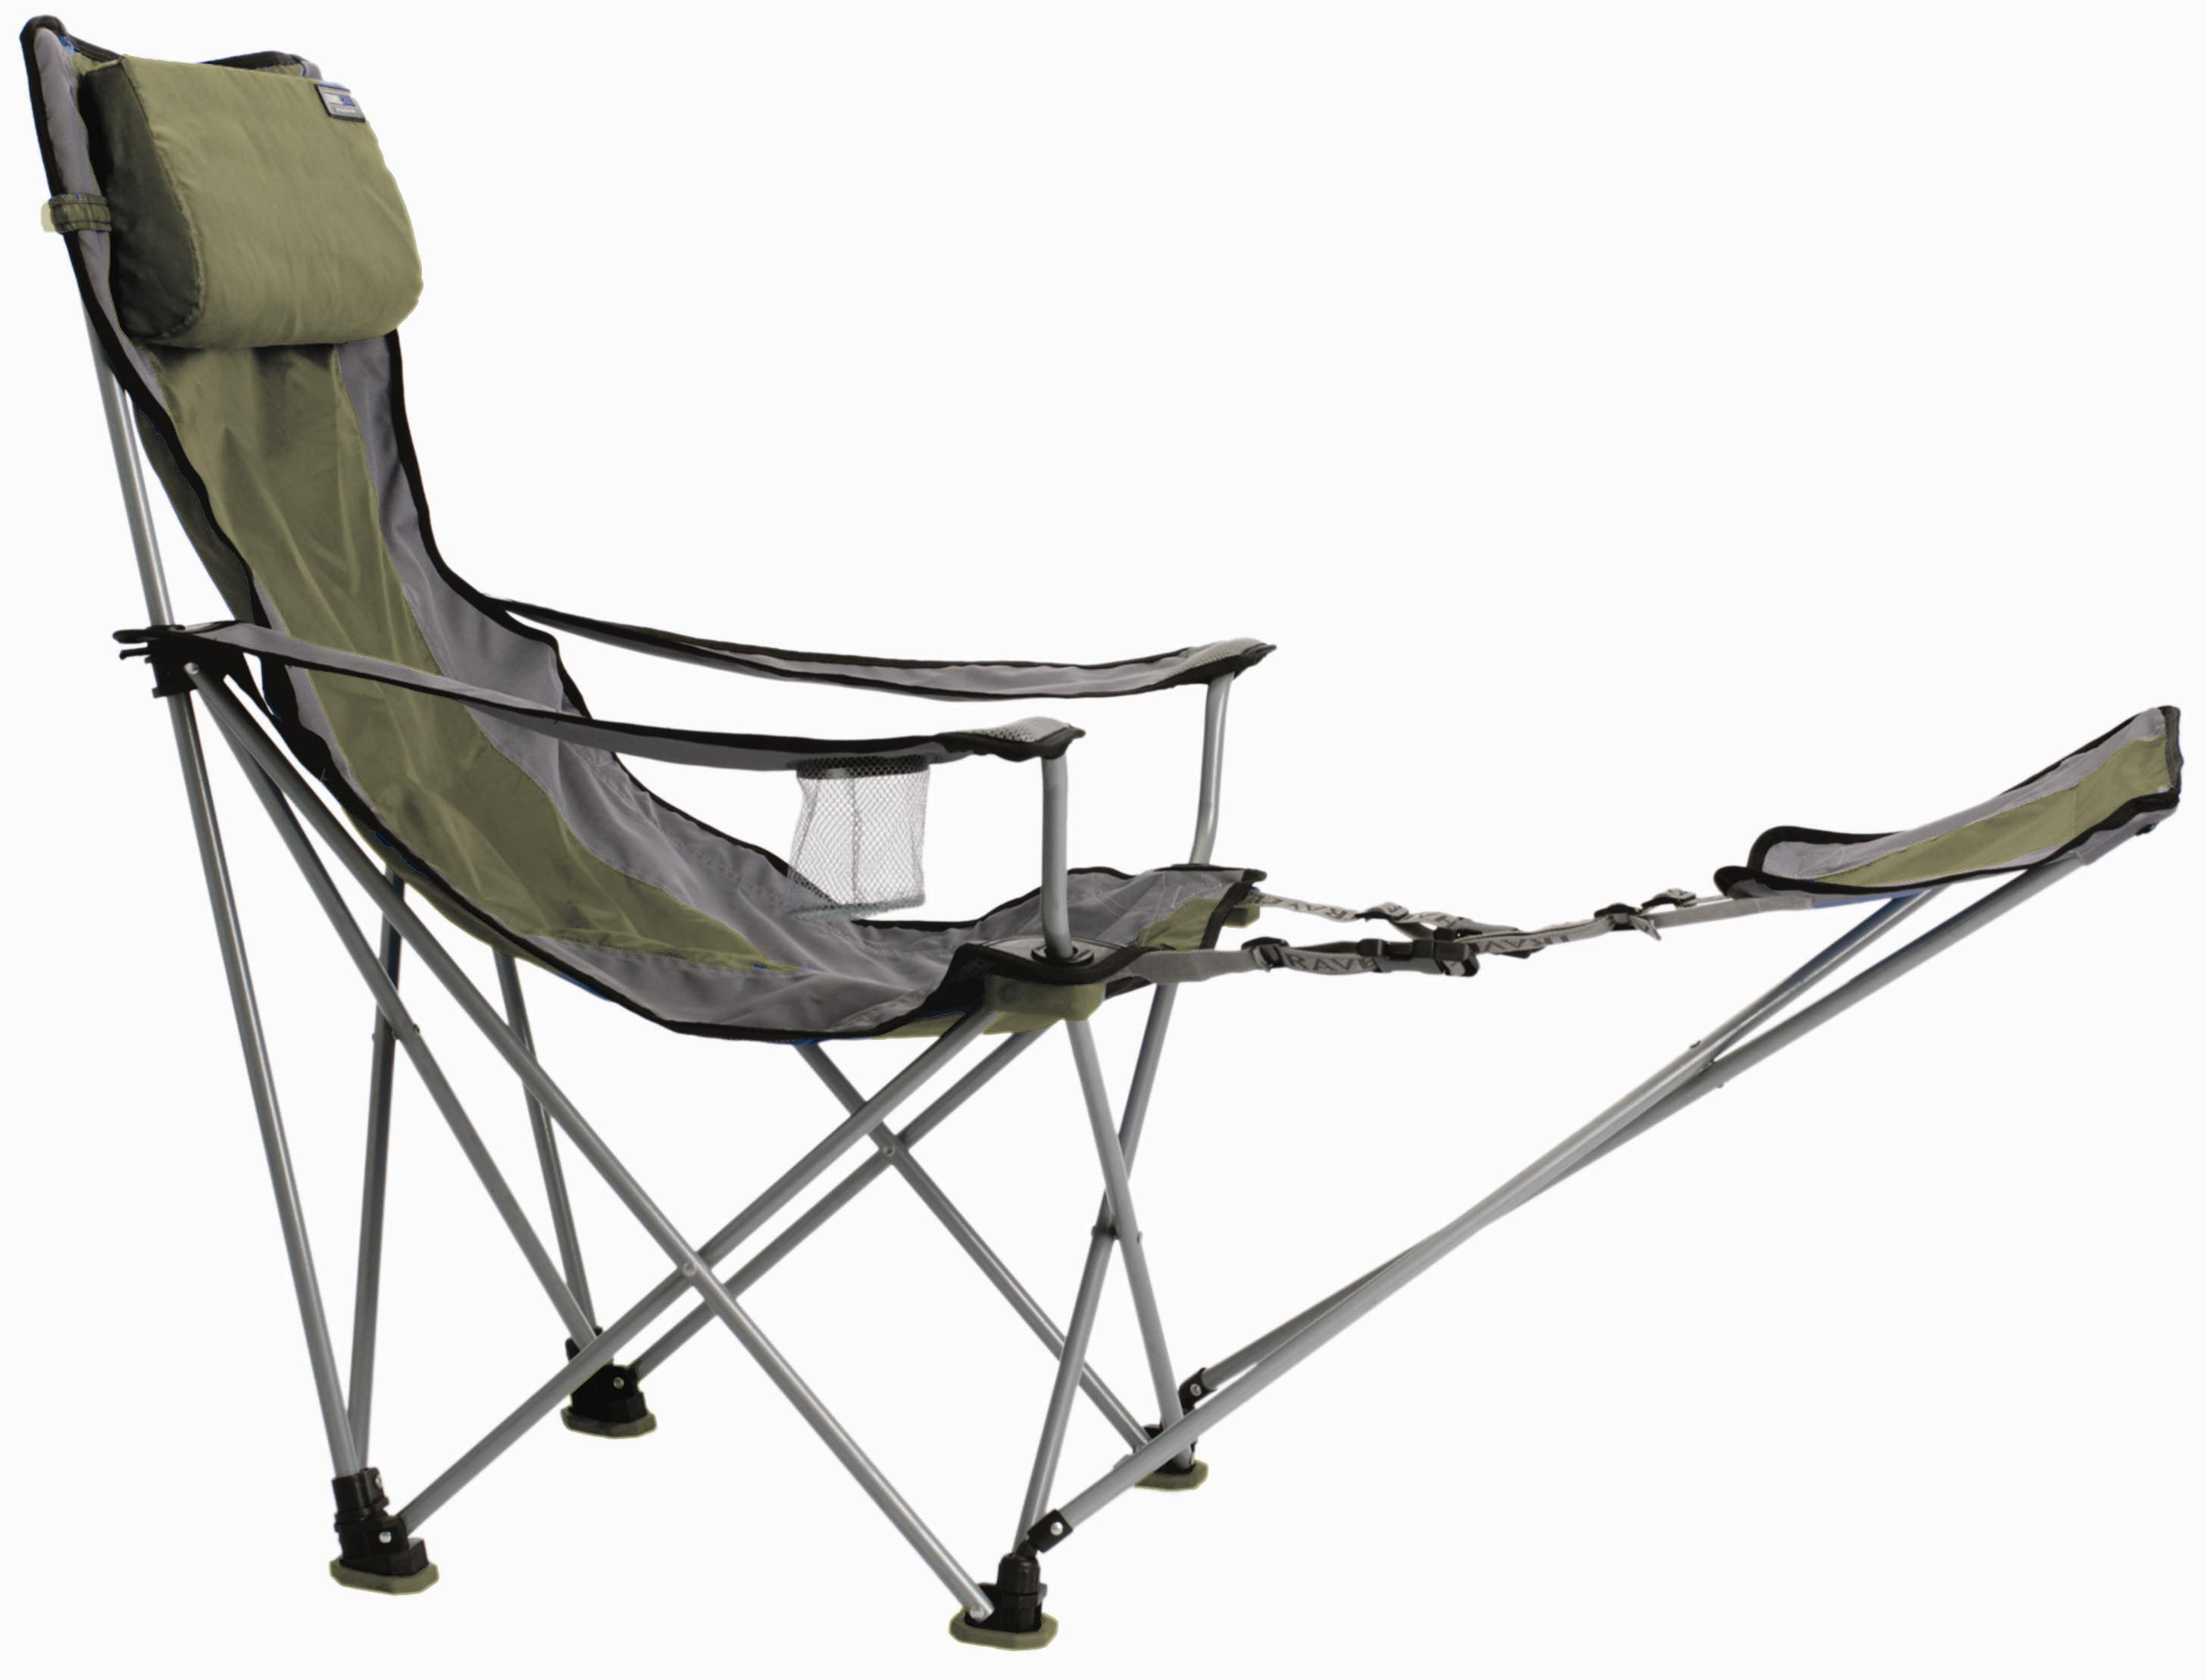 folding outdoor chairs travel chair big bubba folding outdoor chair, green NTJXFBO